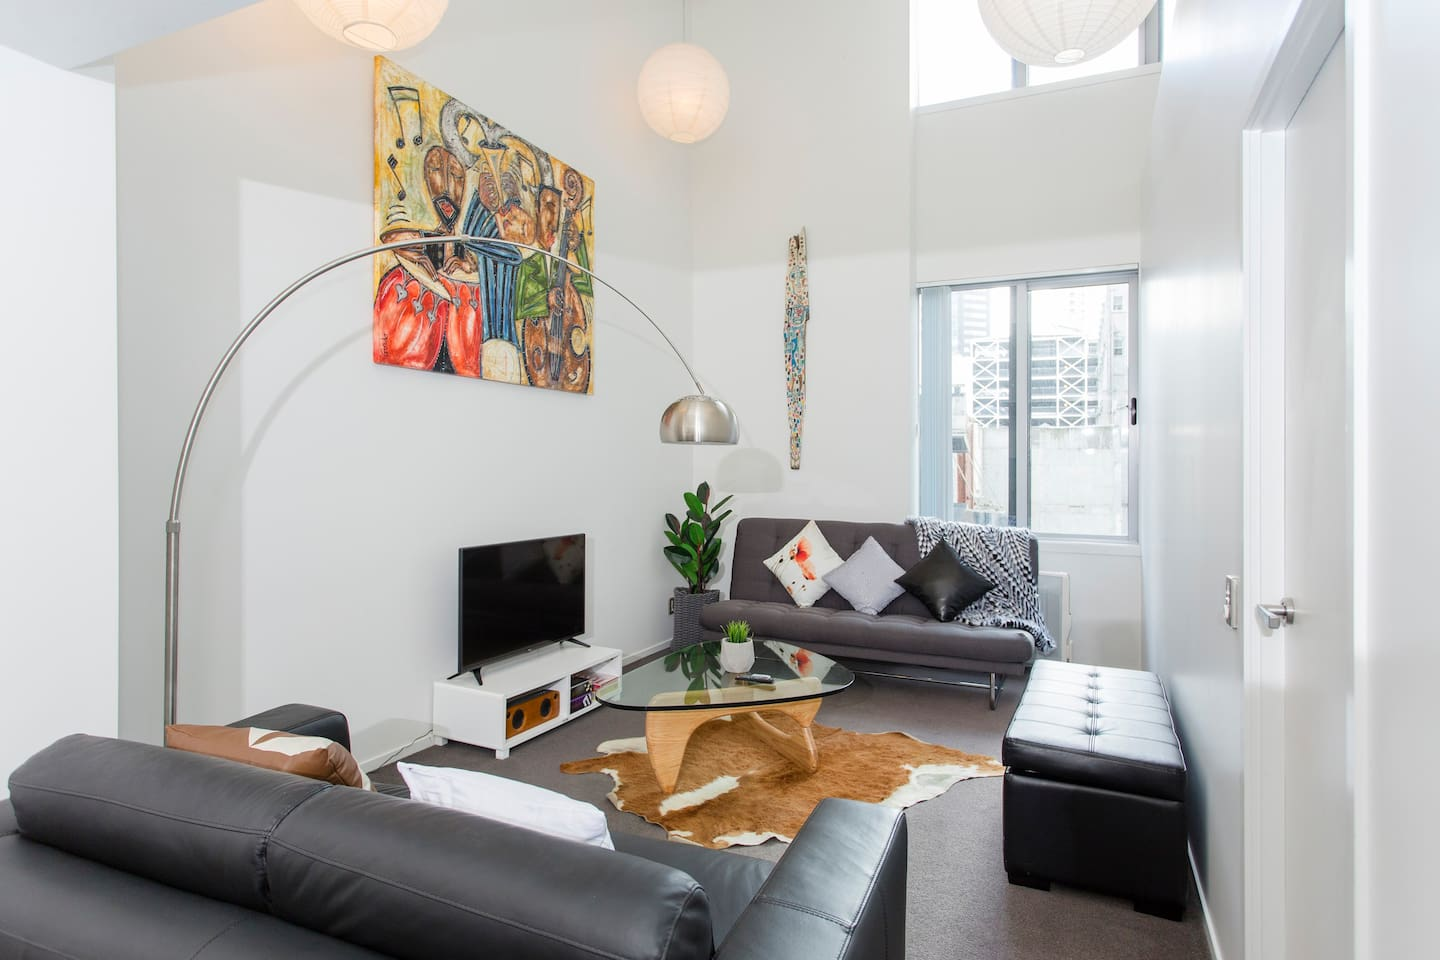 Great open plan living with high stud ceilings giving the apartment a wonderfully spacious feel